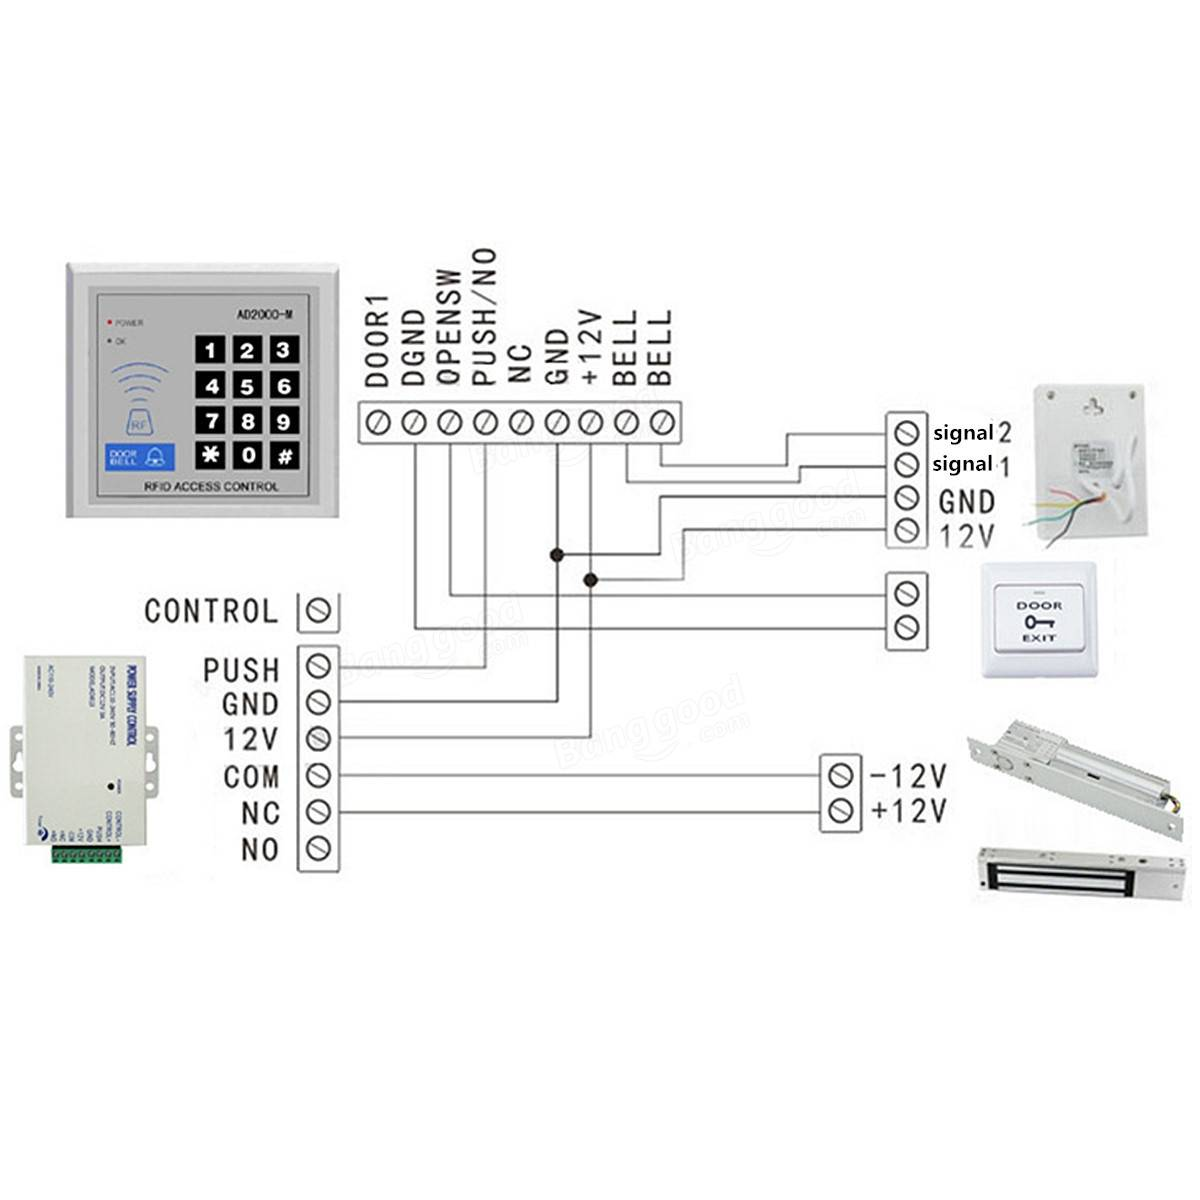 door access control system wiring diagram toyota hiace radio for